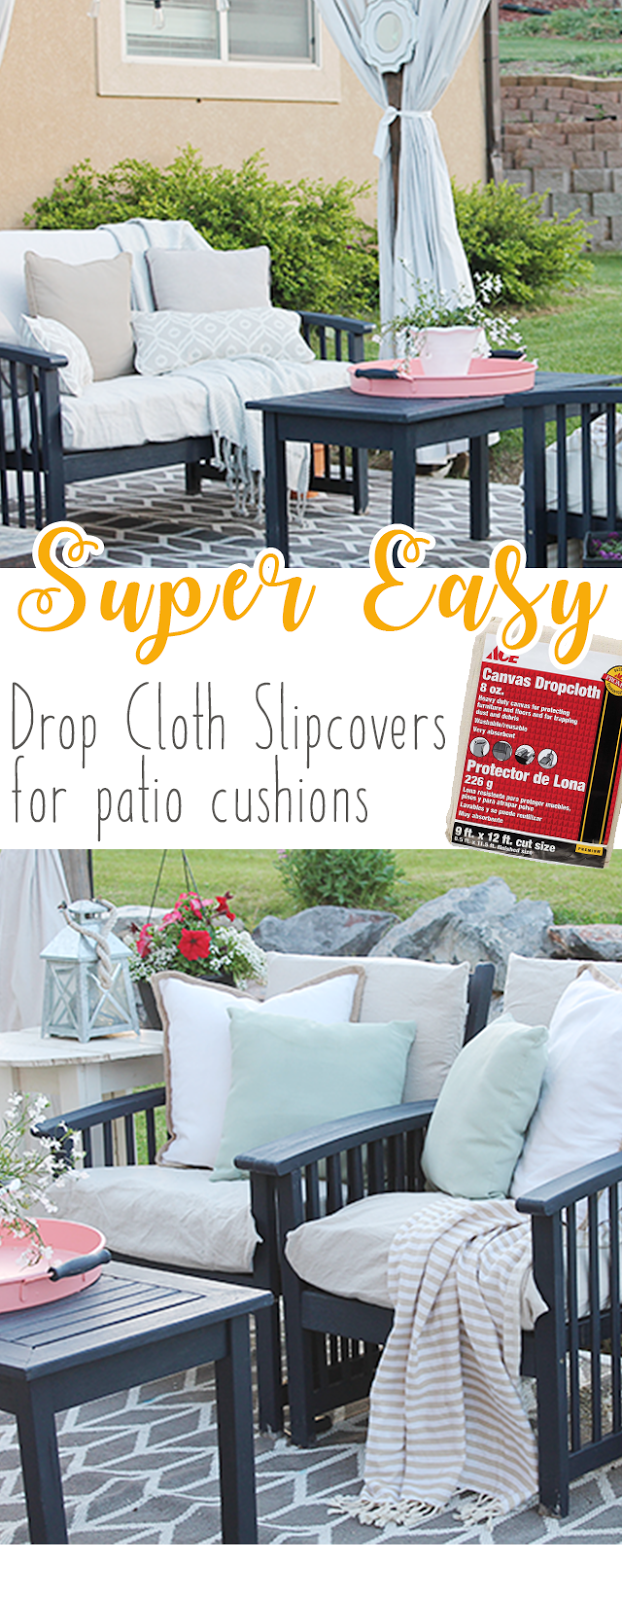 diy drop cloth patio cushion slipcovers easy tutorial on how to make new slipcovers out